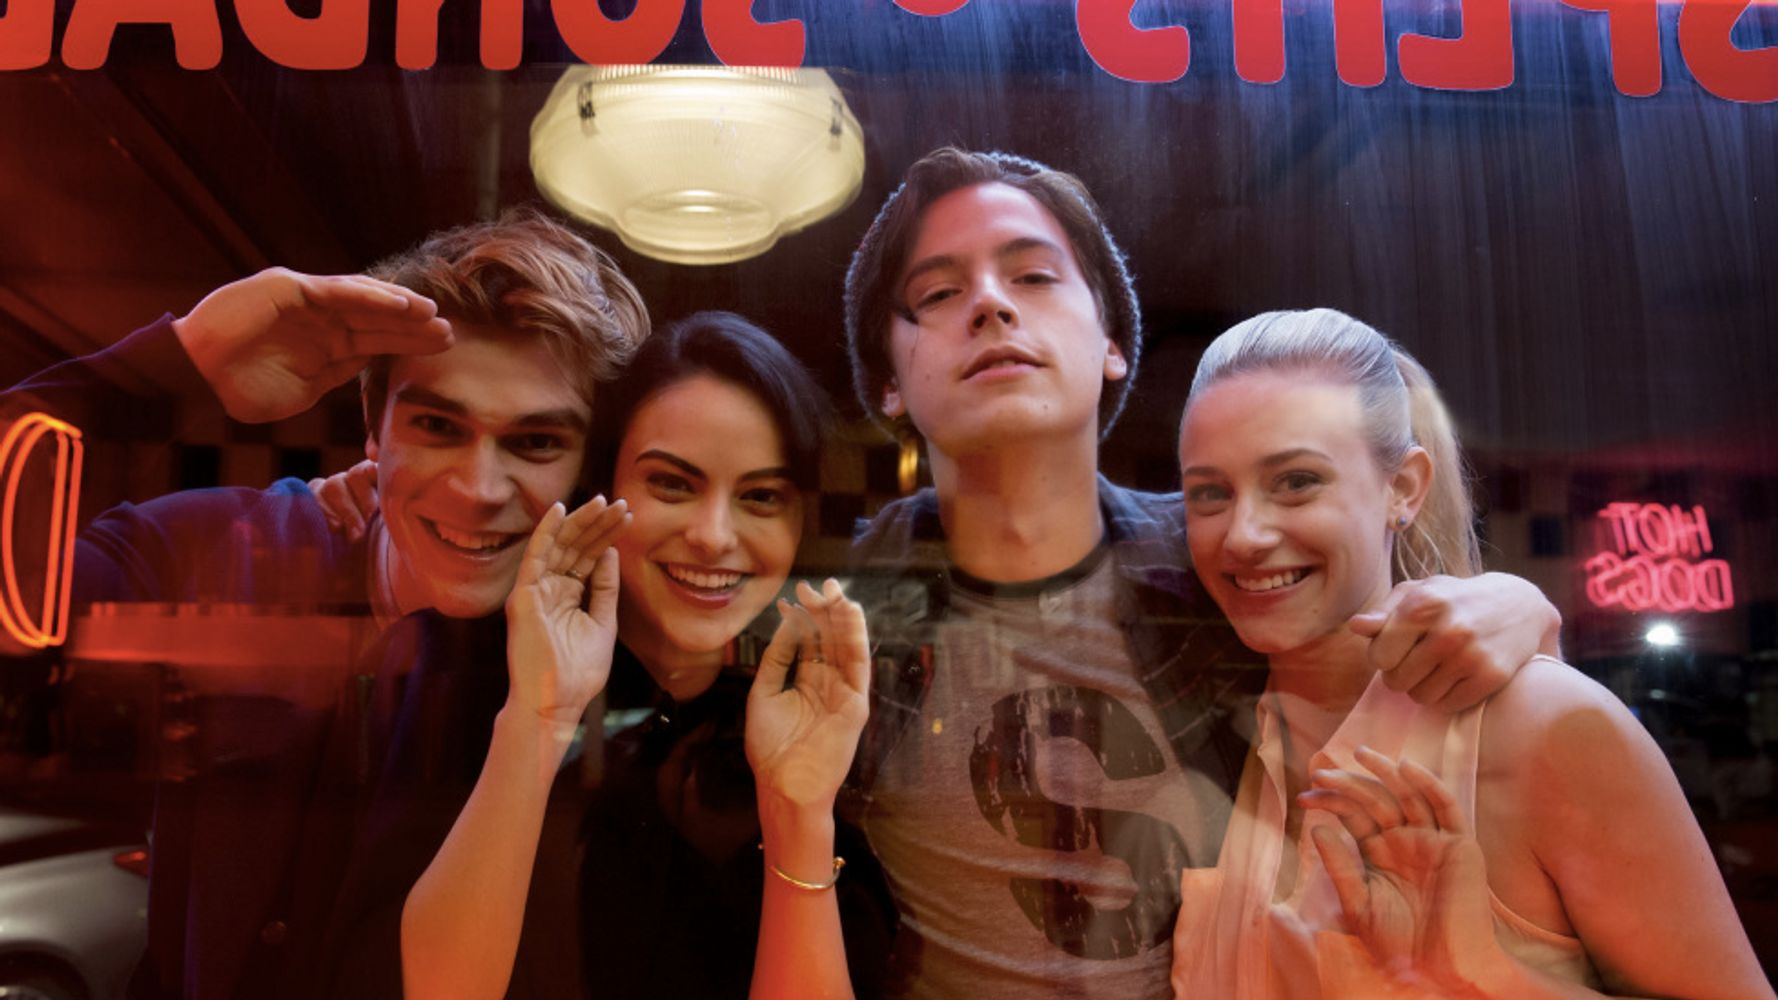 The CW's 'Riverdale' Is Home To The Best Female Friendship